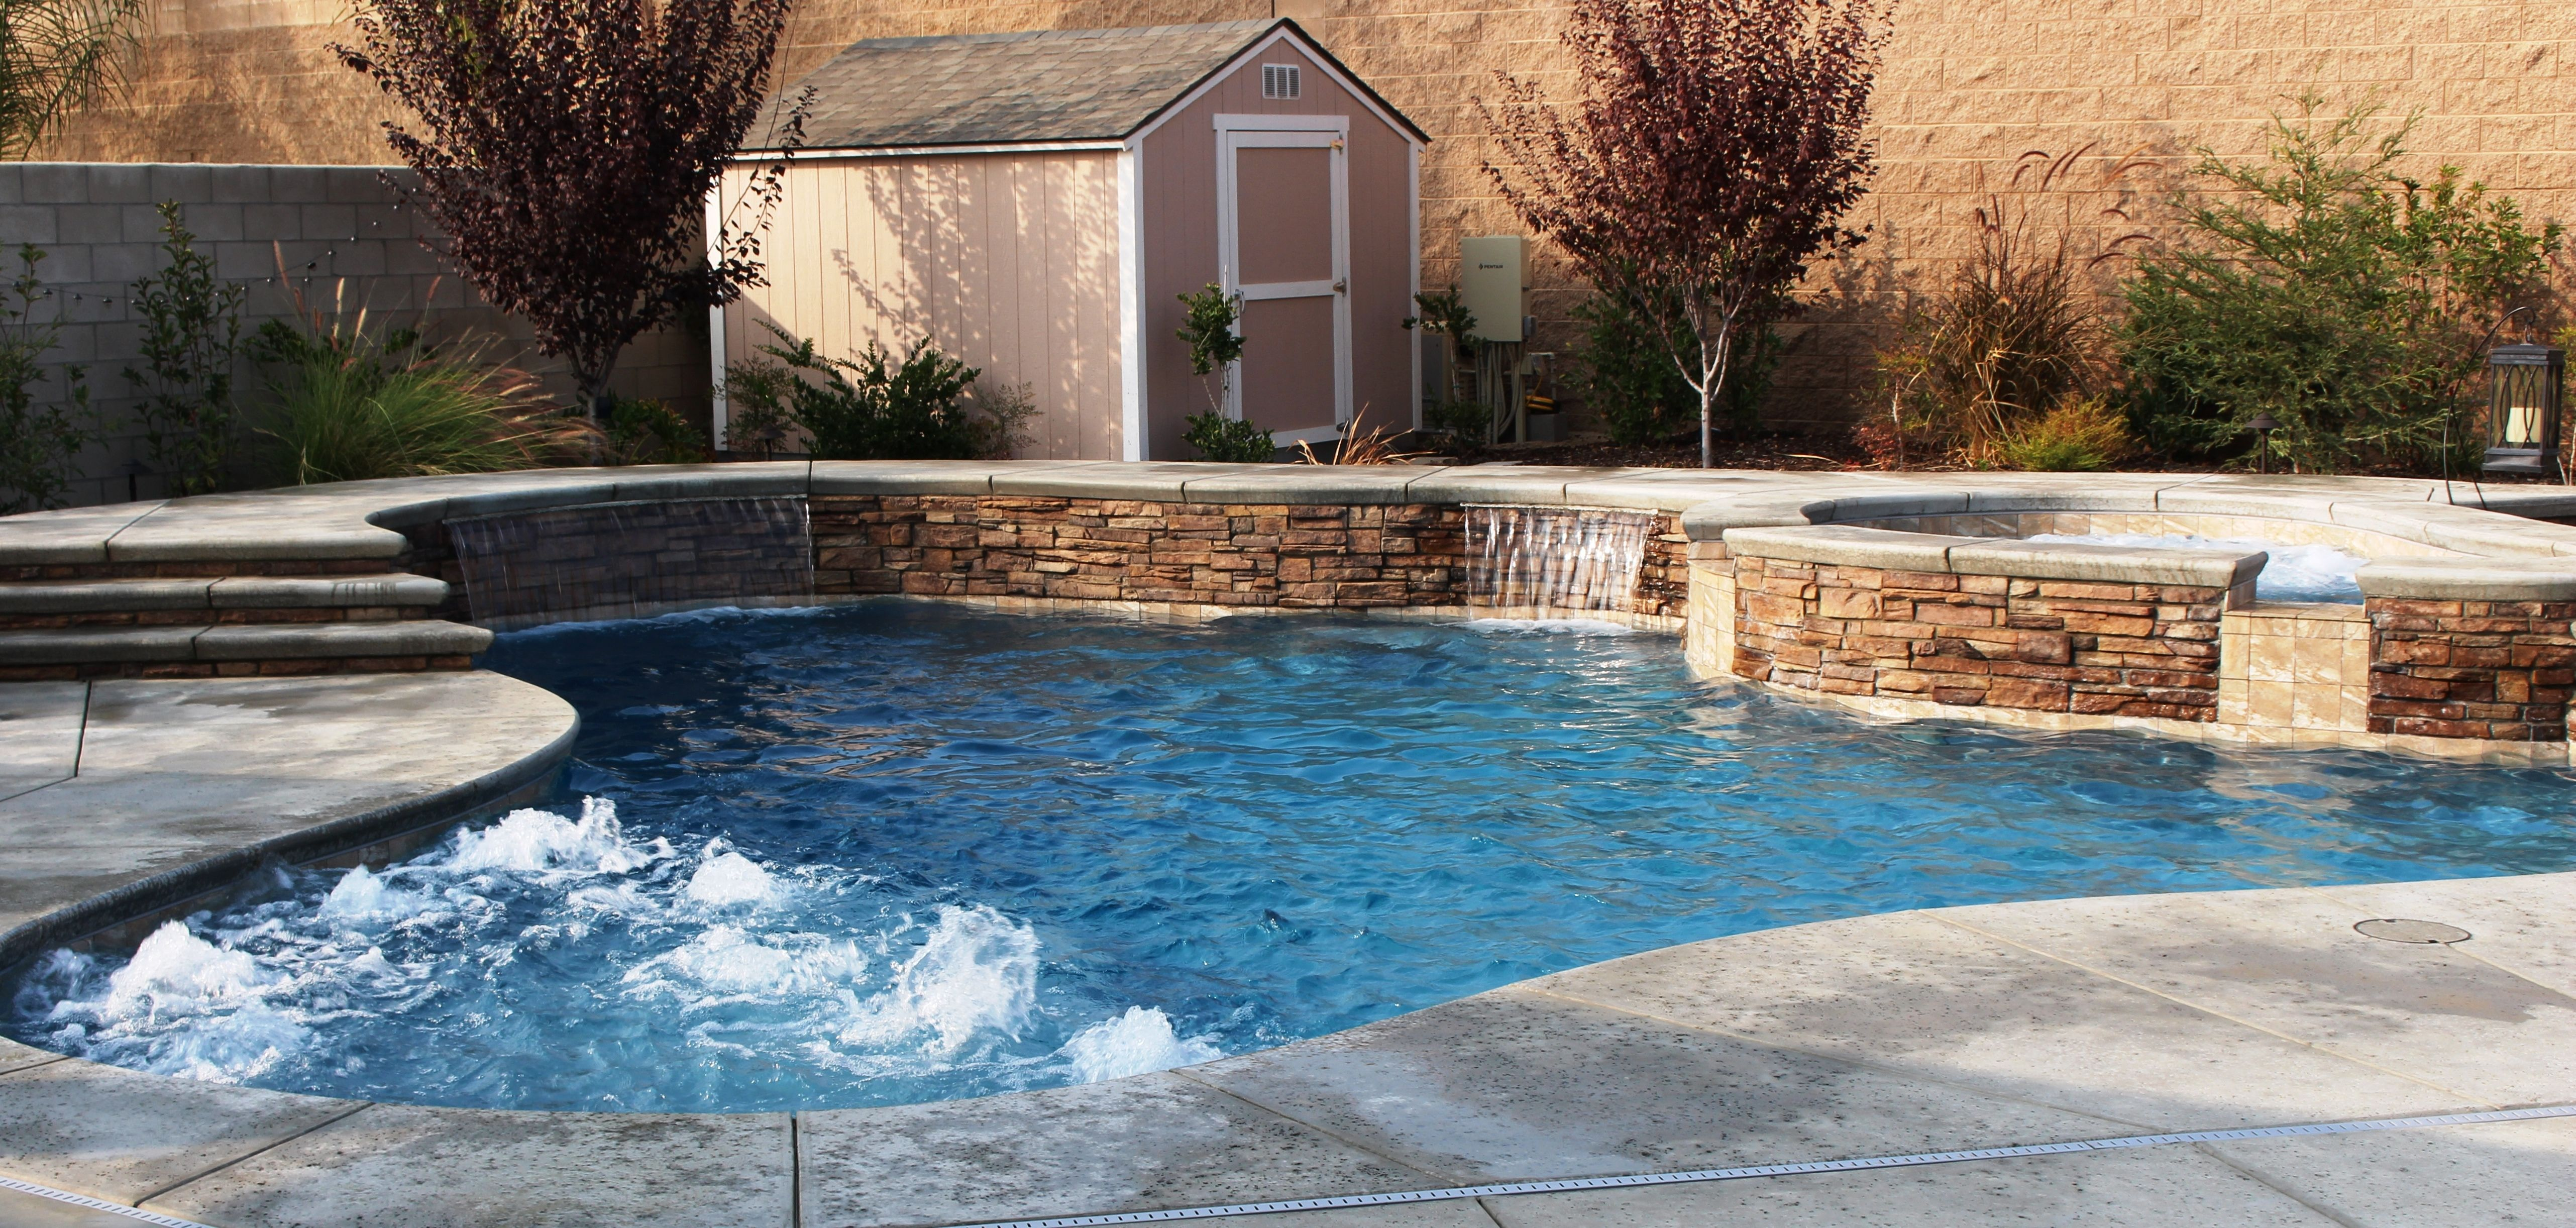 Stacked stone raised wall with sheer descents & bubblers make the ...